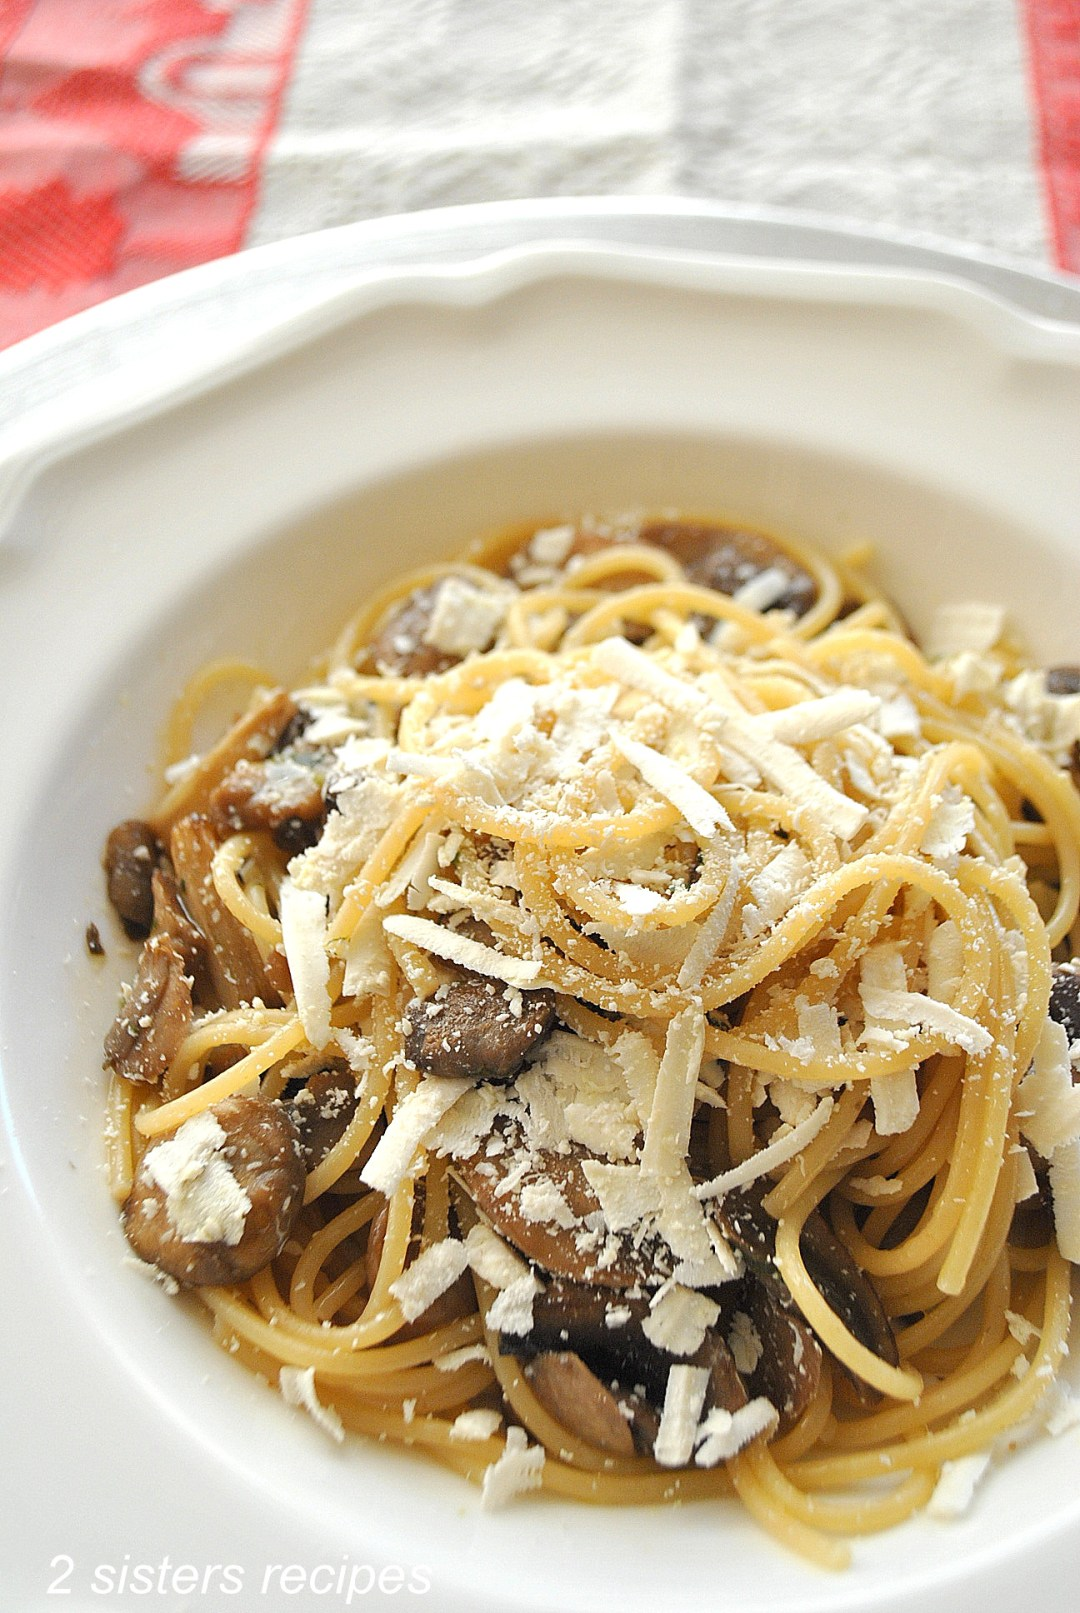 Spaghetti with Wild Mushrooms,Cognac and Truffle Oil by 2sistersrecipes..com